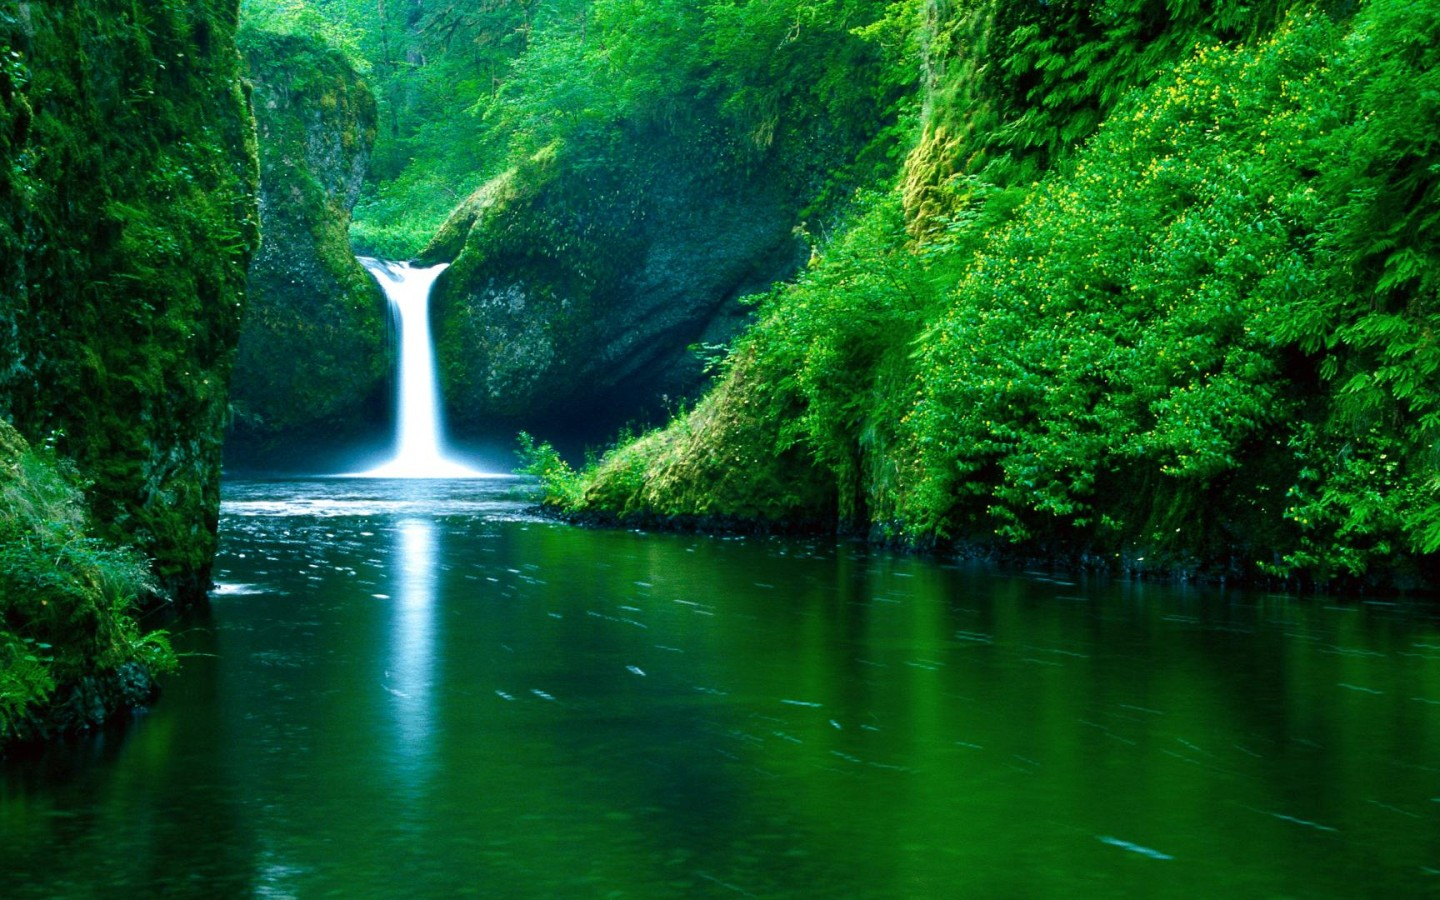 Waterfall & River